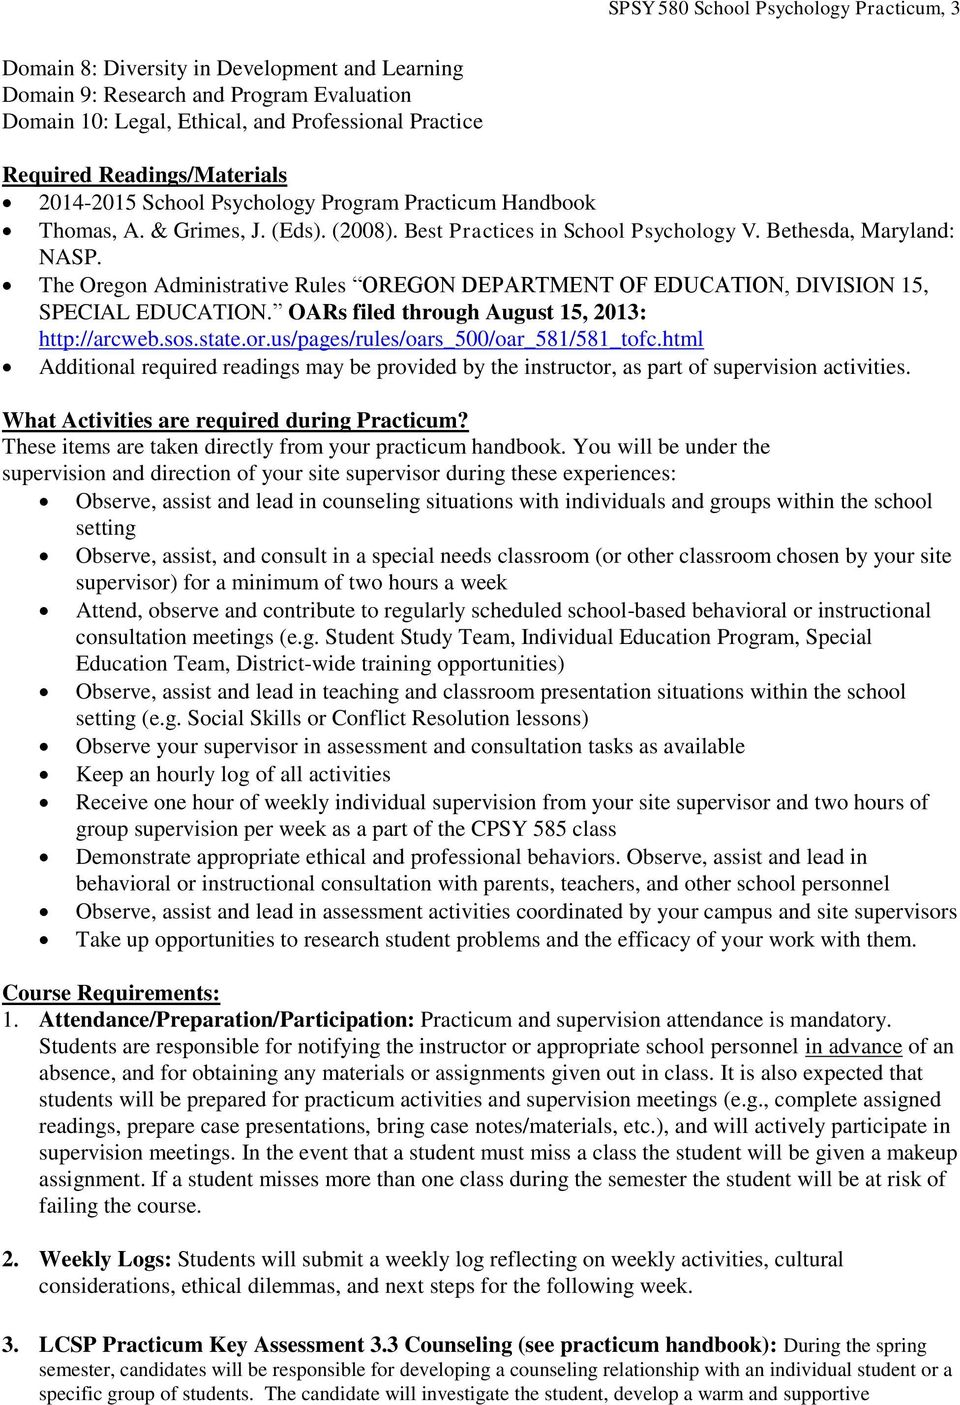 The Oregon Administrative Rules OREGON DEPARTMENT OF EDUCATION, DIVISION 15, SPECIAL EDUCATION. OARs filed through August 15, 2013: http://arcweb.sos.state.or.us/pages/rules/oars_500/oar_581/581_tofc.